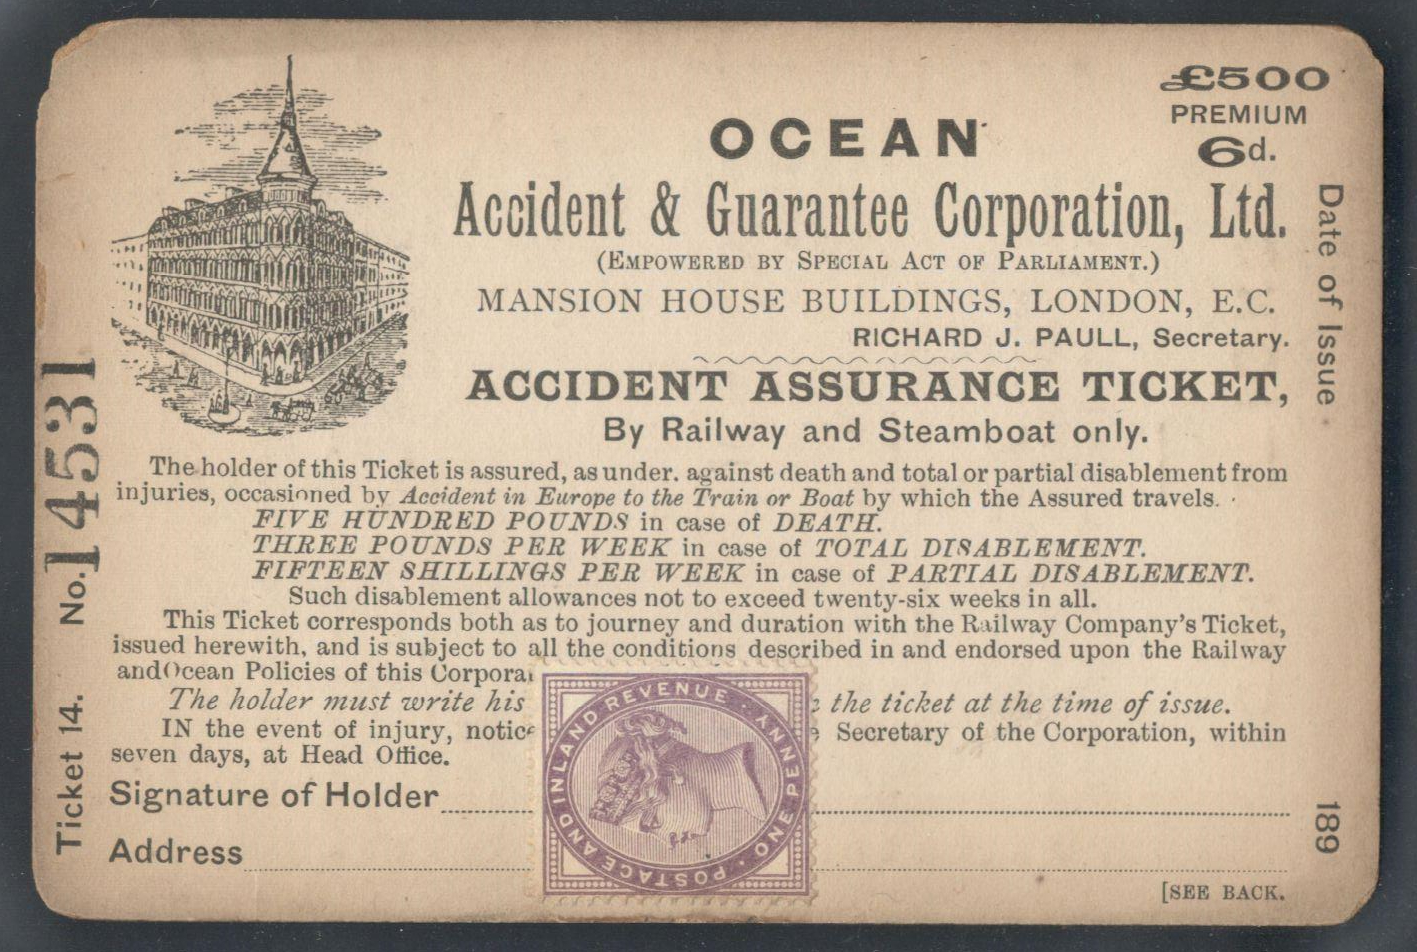 Lot 17 - 1890s ACCIDENT ASSURANCE TICKET BY RAILWAY AND STEAMBOAT ONLY FROM OCEAN ACCIDENT & GUARANTEE CORP